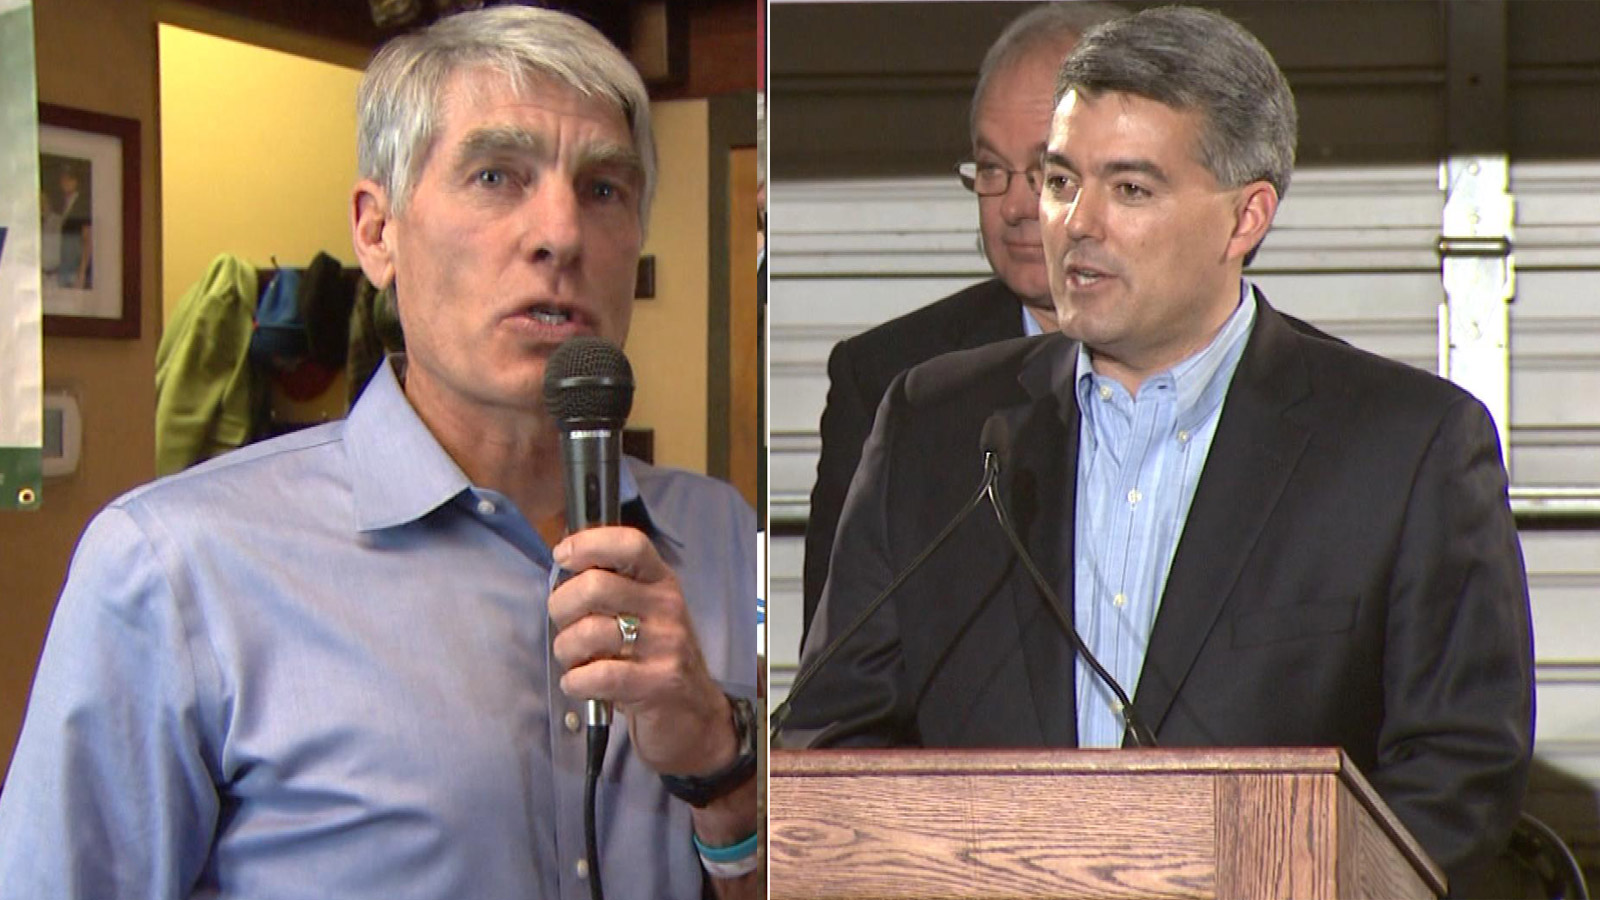 Mark Udall, left, and Cory Gardner, right (credit: CBS)